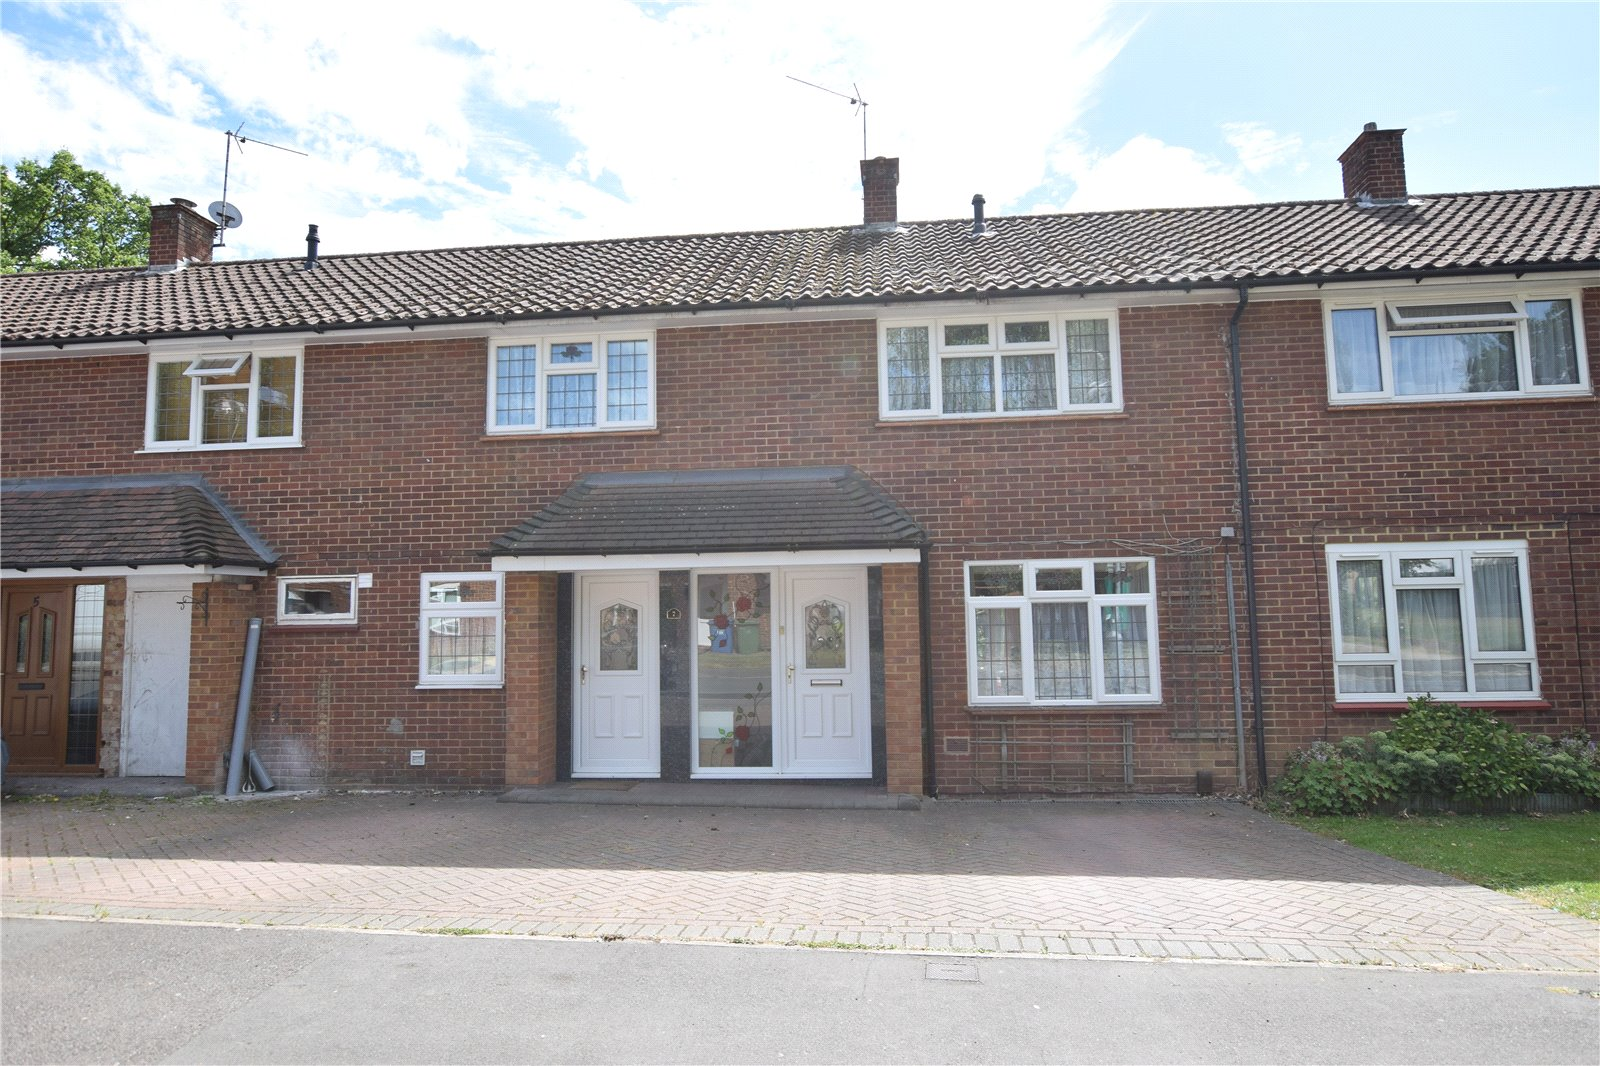 4 Bedrooms Terraced House for sale in Priestwood Avenue, Bracknell, Berkshire, RG42